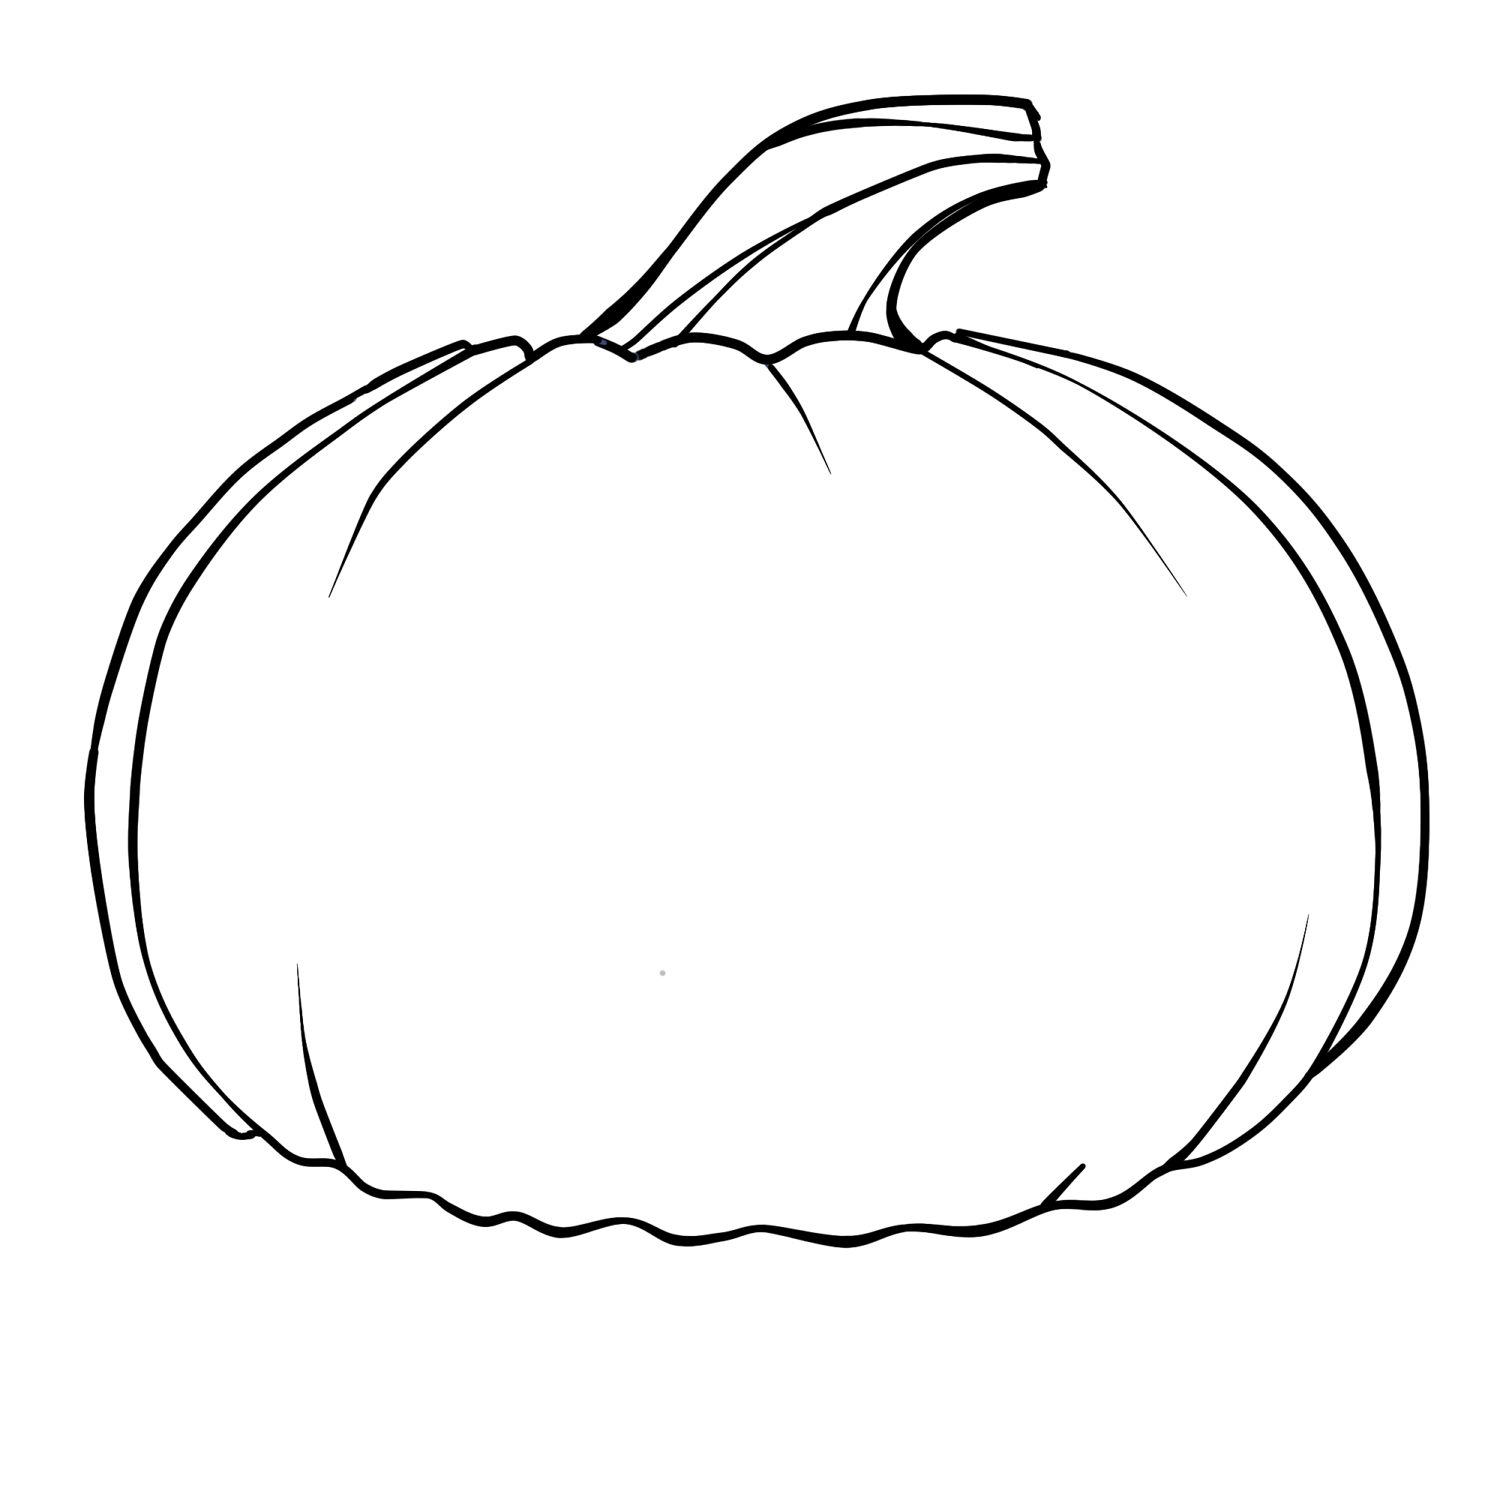 Free Outline Of A Pumpkin, Download Free Clip Art, Free Clip Art On - Pumpkin Templates Free Printable